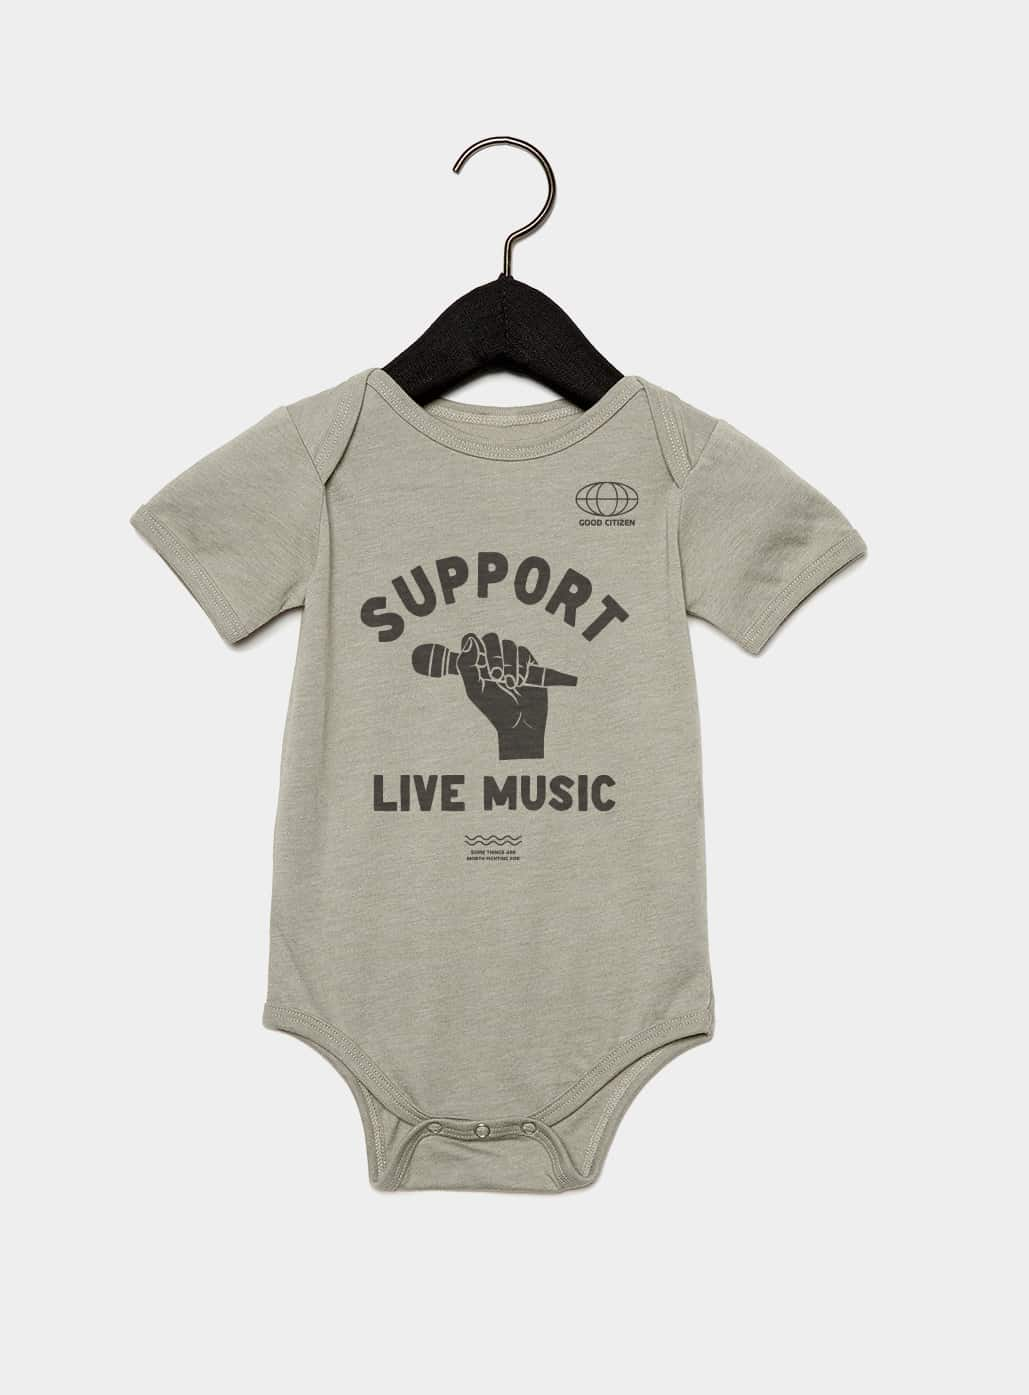 SOLIDARITY SERIES No. 4: Support Live Music Kids Onesie